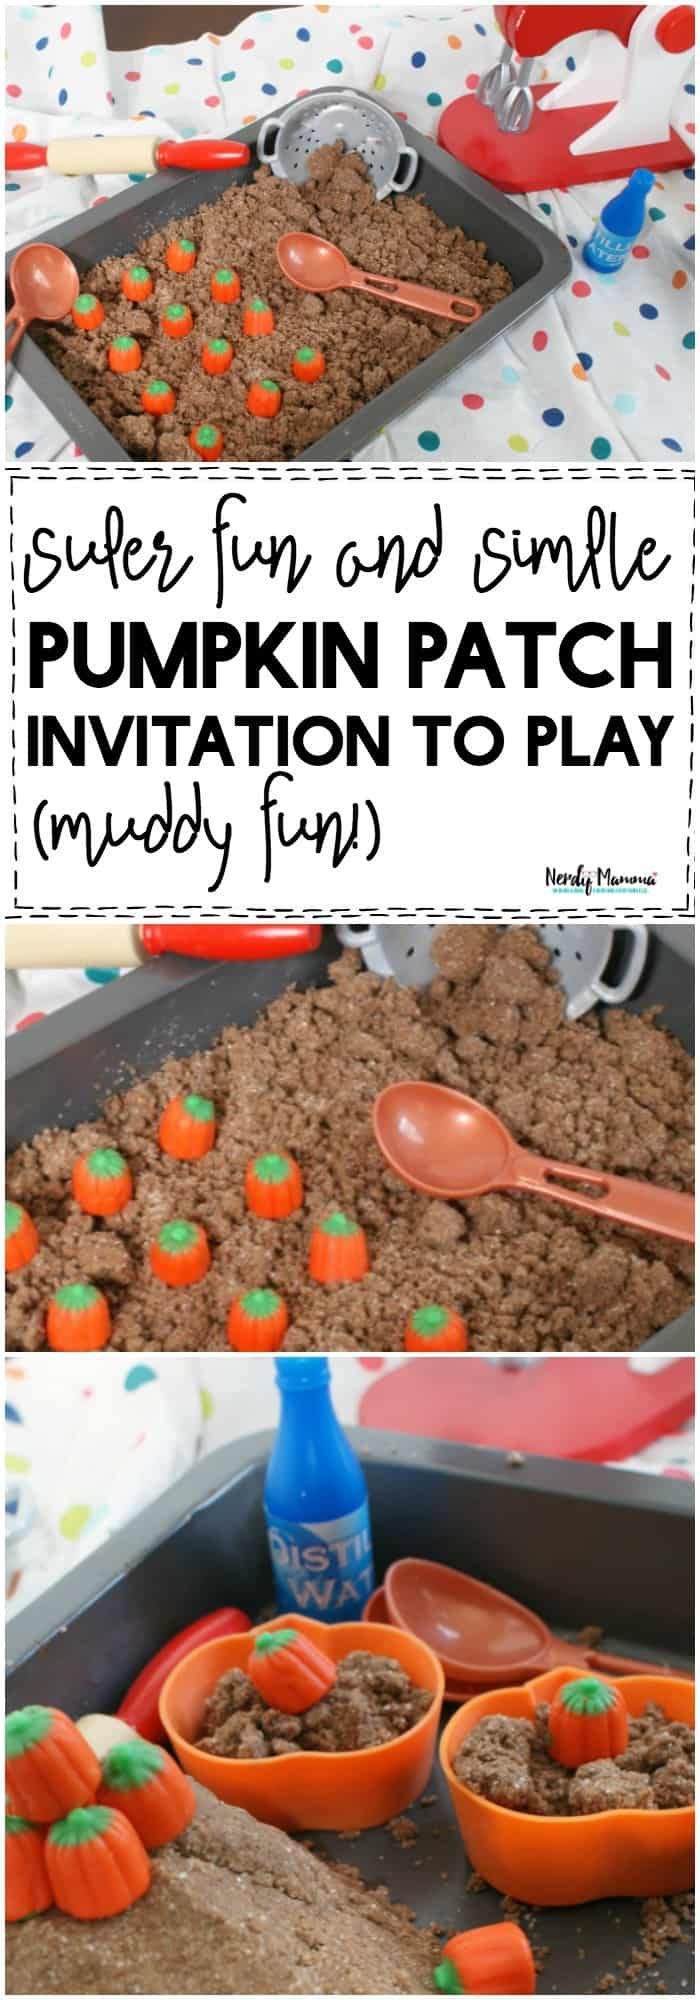 OMG! You've got to check out this super fun and simple muddy pumpkin patch invitation to play! Your kids will have SO MUCH FUN!!